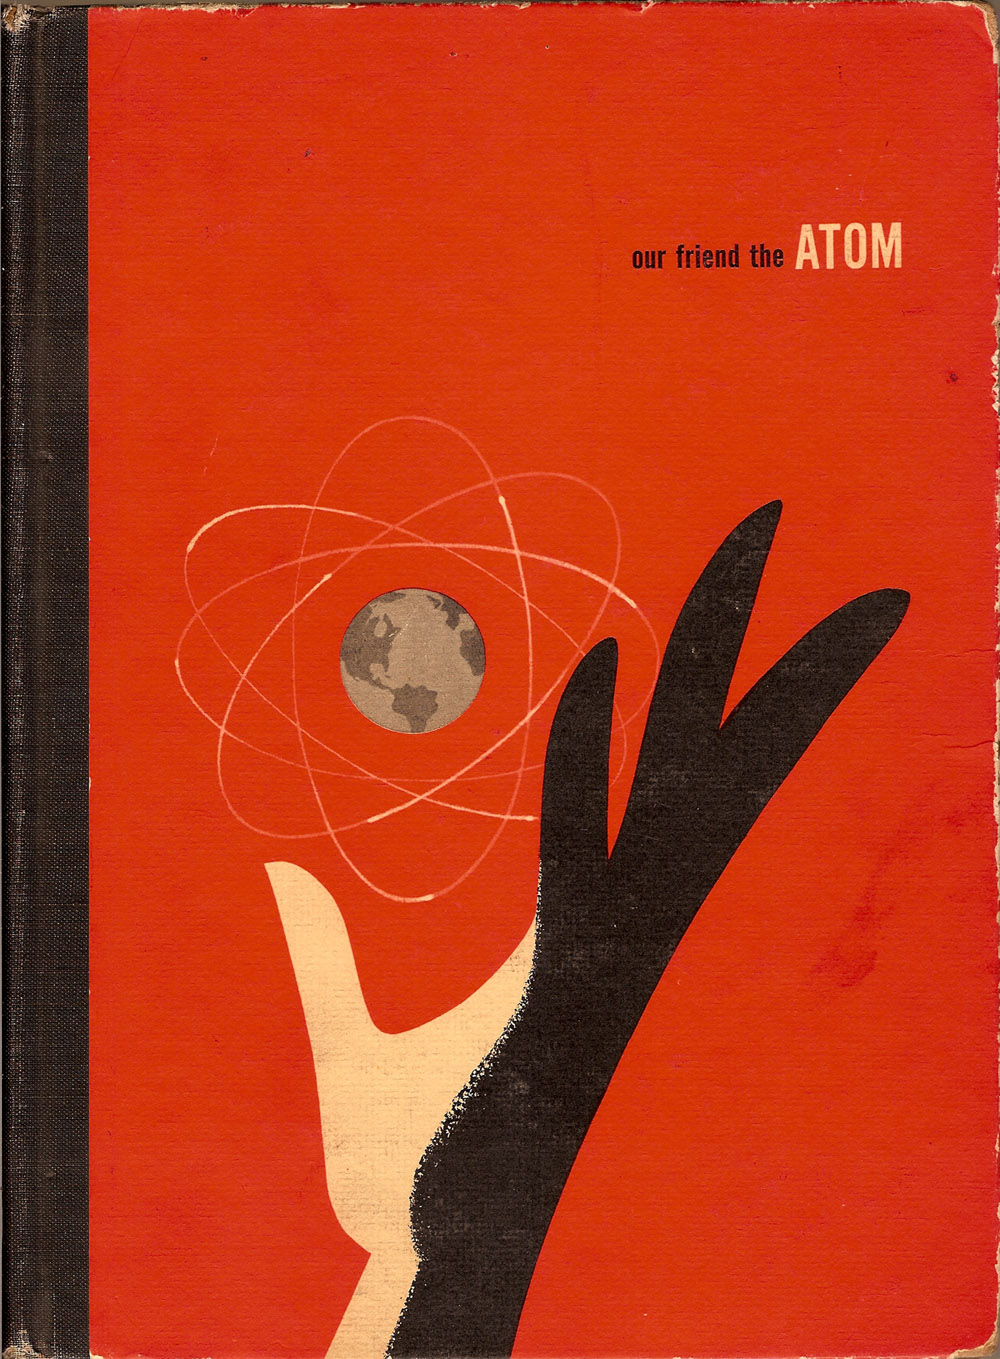 our friend the atom cover.jpg